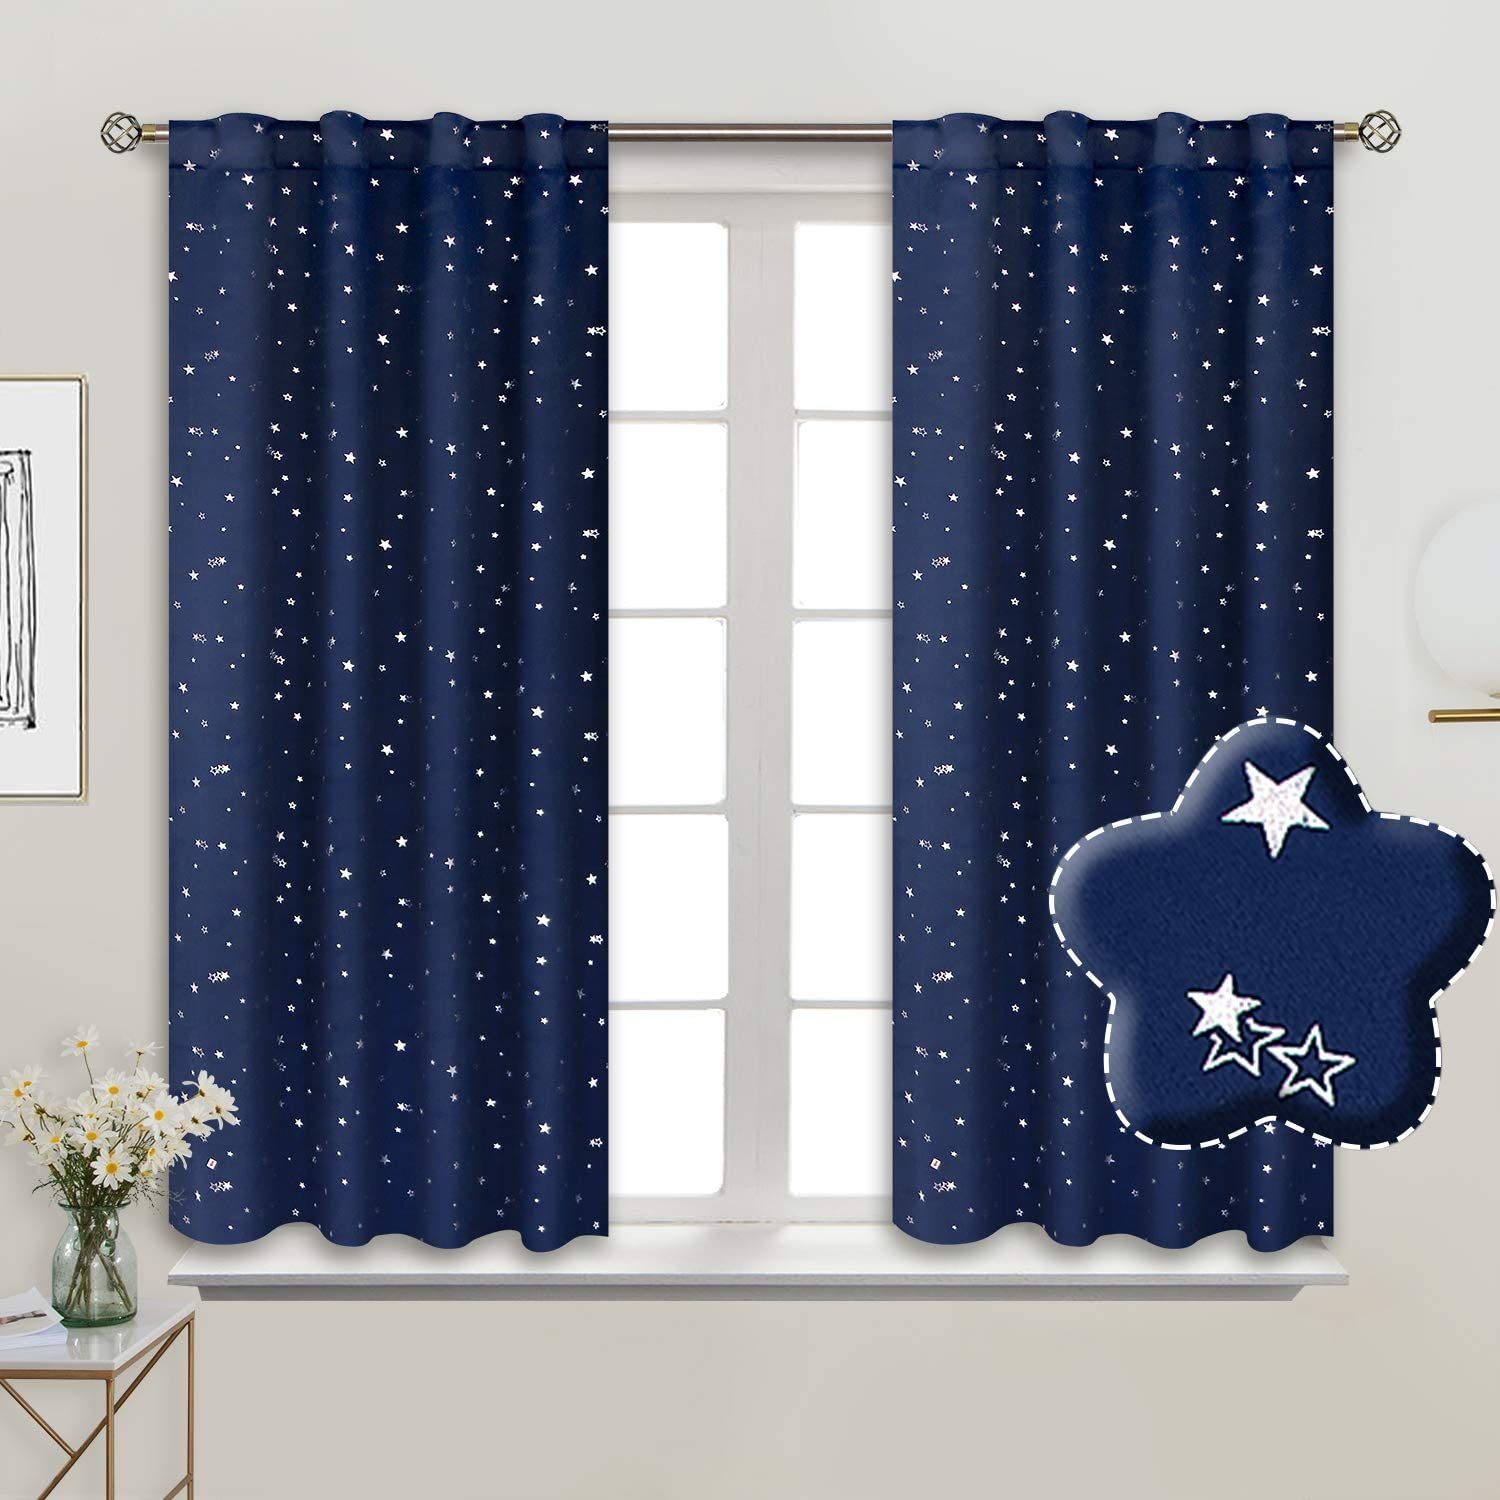 BGment Rod Pocket and Back Tab Blackout Curtains for Kids Bedroom - Sparkly Star Printed Thermal Insulated Room Darkening Curtain for Nursery, 38 x 54 Inch, 2 Panels, Navy Blue